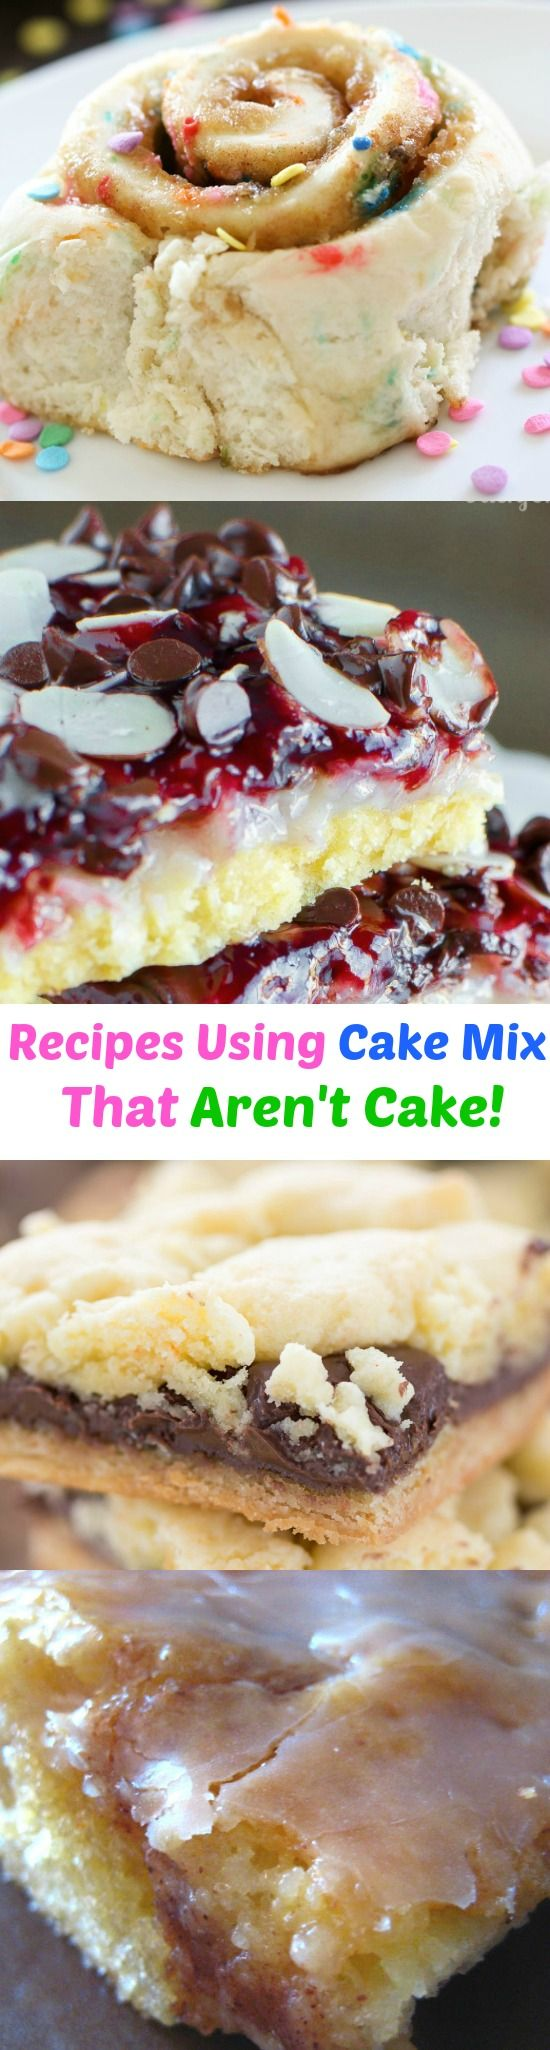 Recipes Using Cake Mix That Aren't Cake!